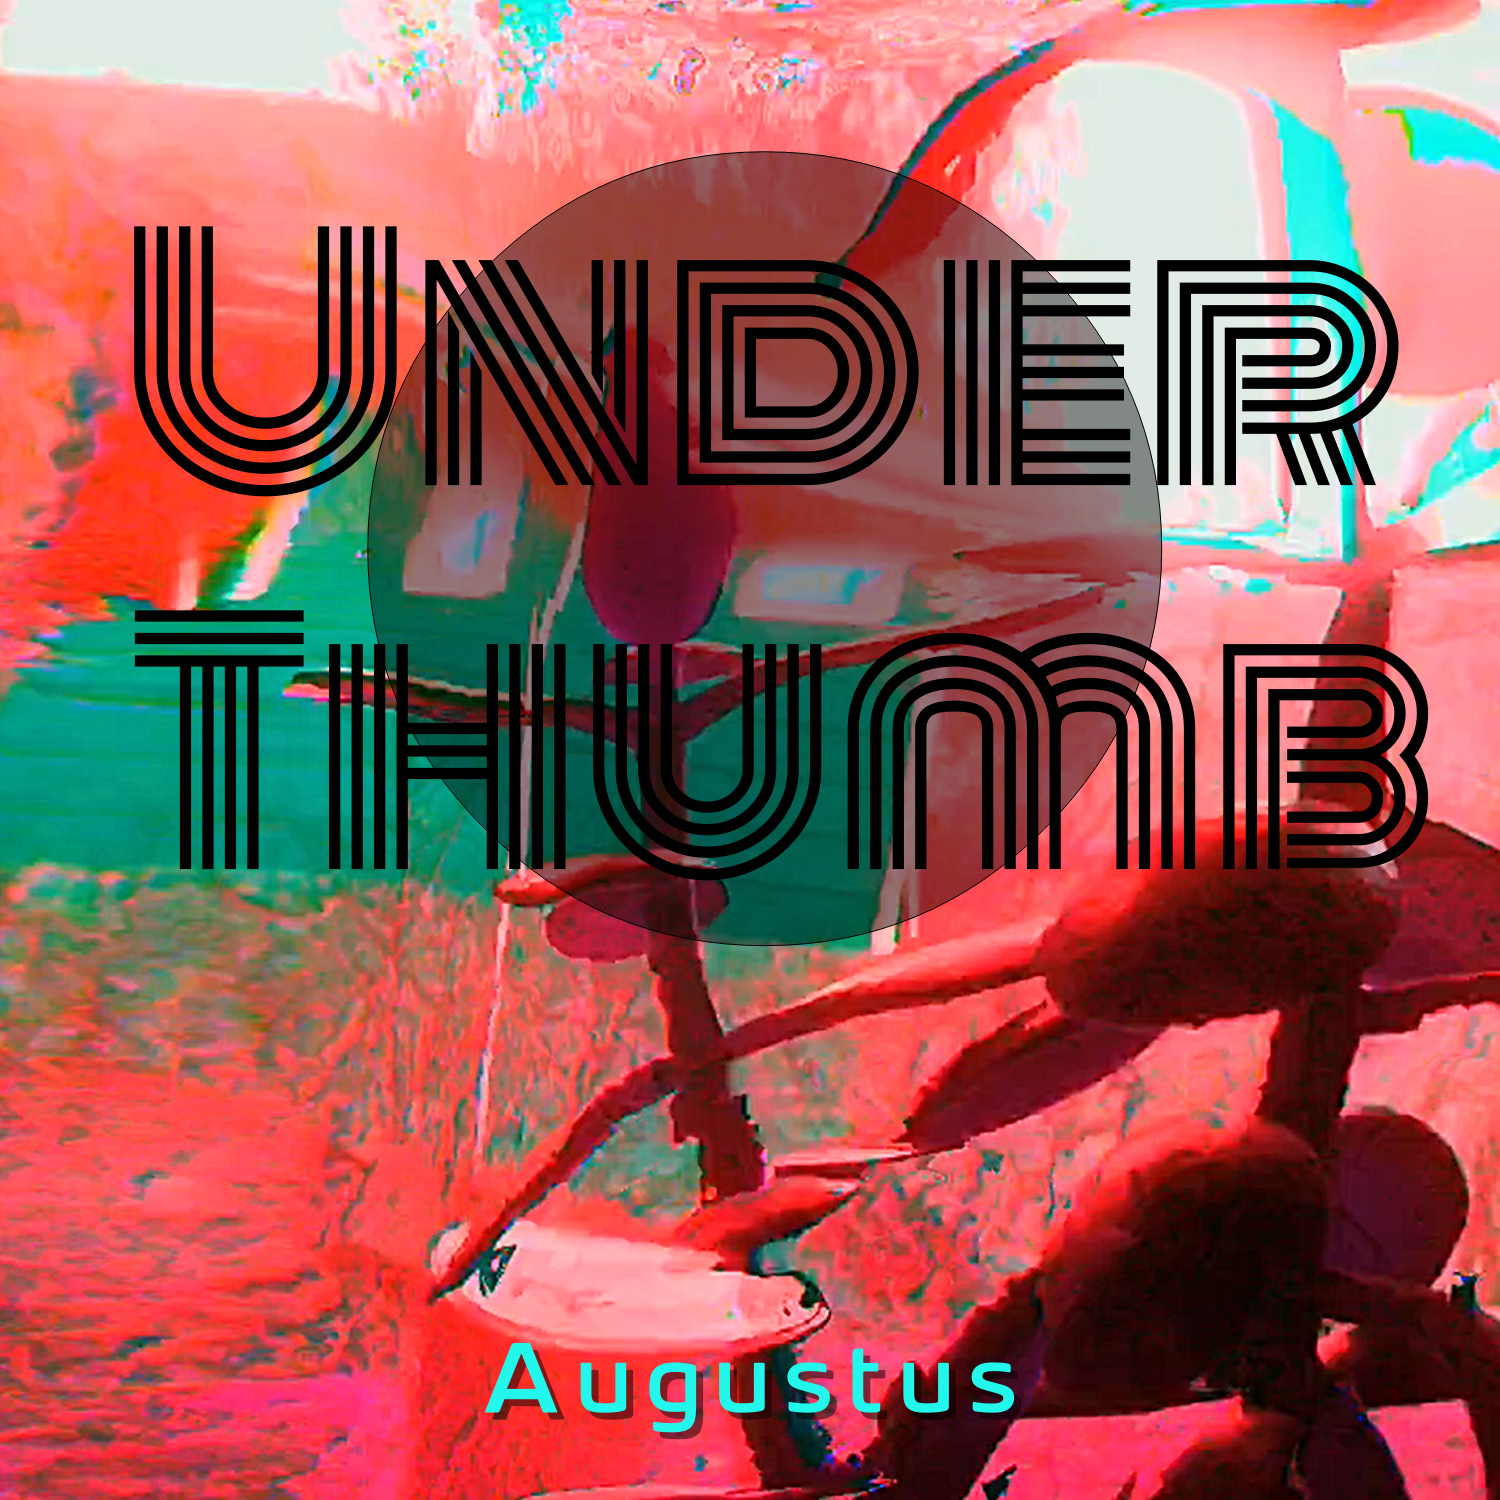 Under Thumb - cover art.jpg